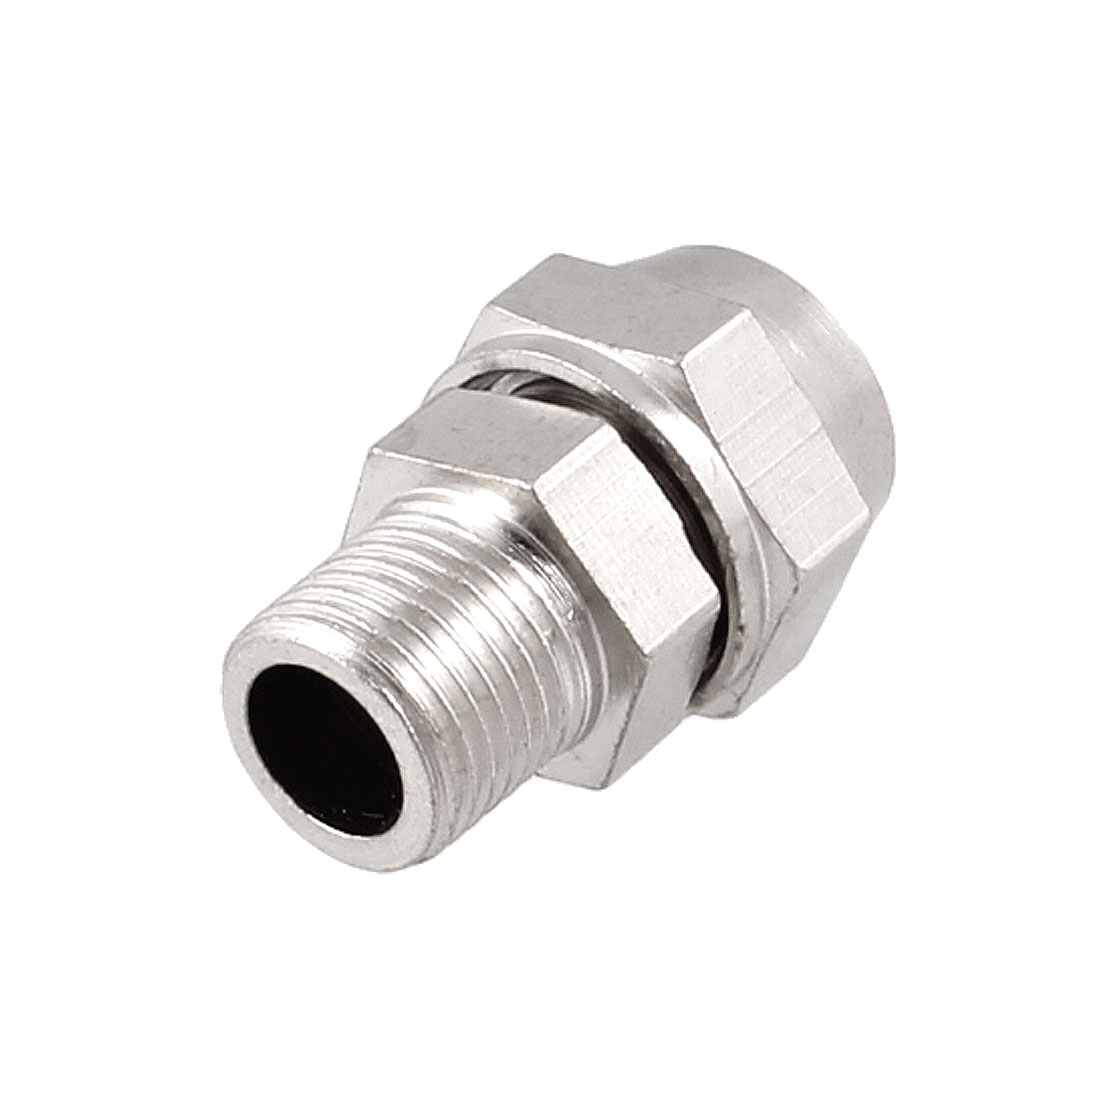 "0.39"" x 0.24"" Pneumatic Air Hose Quick Coupler Connector Fittings Silver Tone"